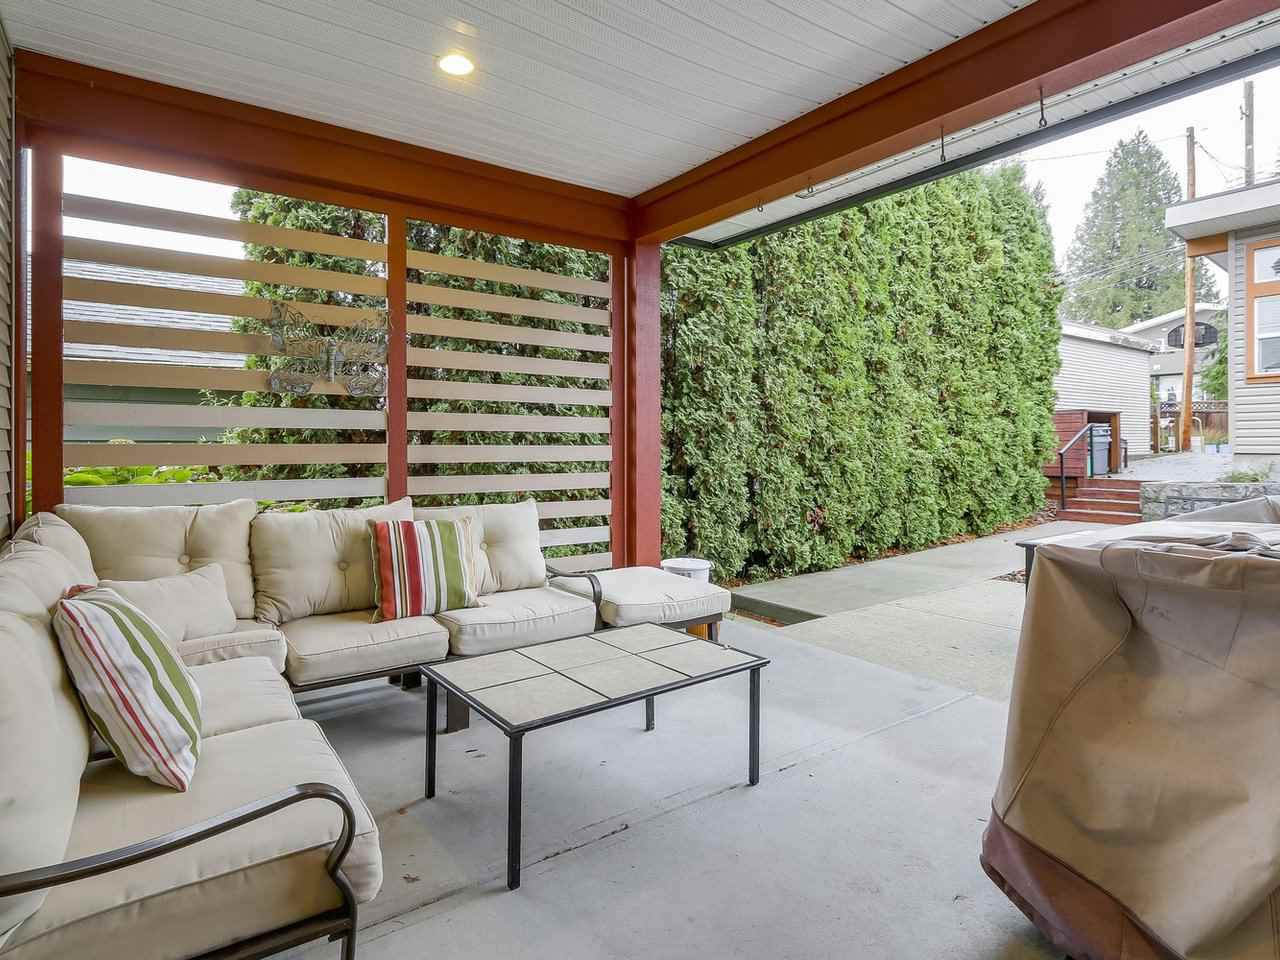 Photo 12: Photos: 658 E 4TH STREET in North Vancouver: Queensbury House for sale : MLS®# R2222993